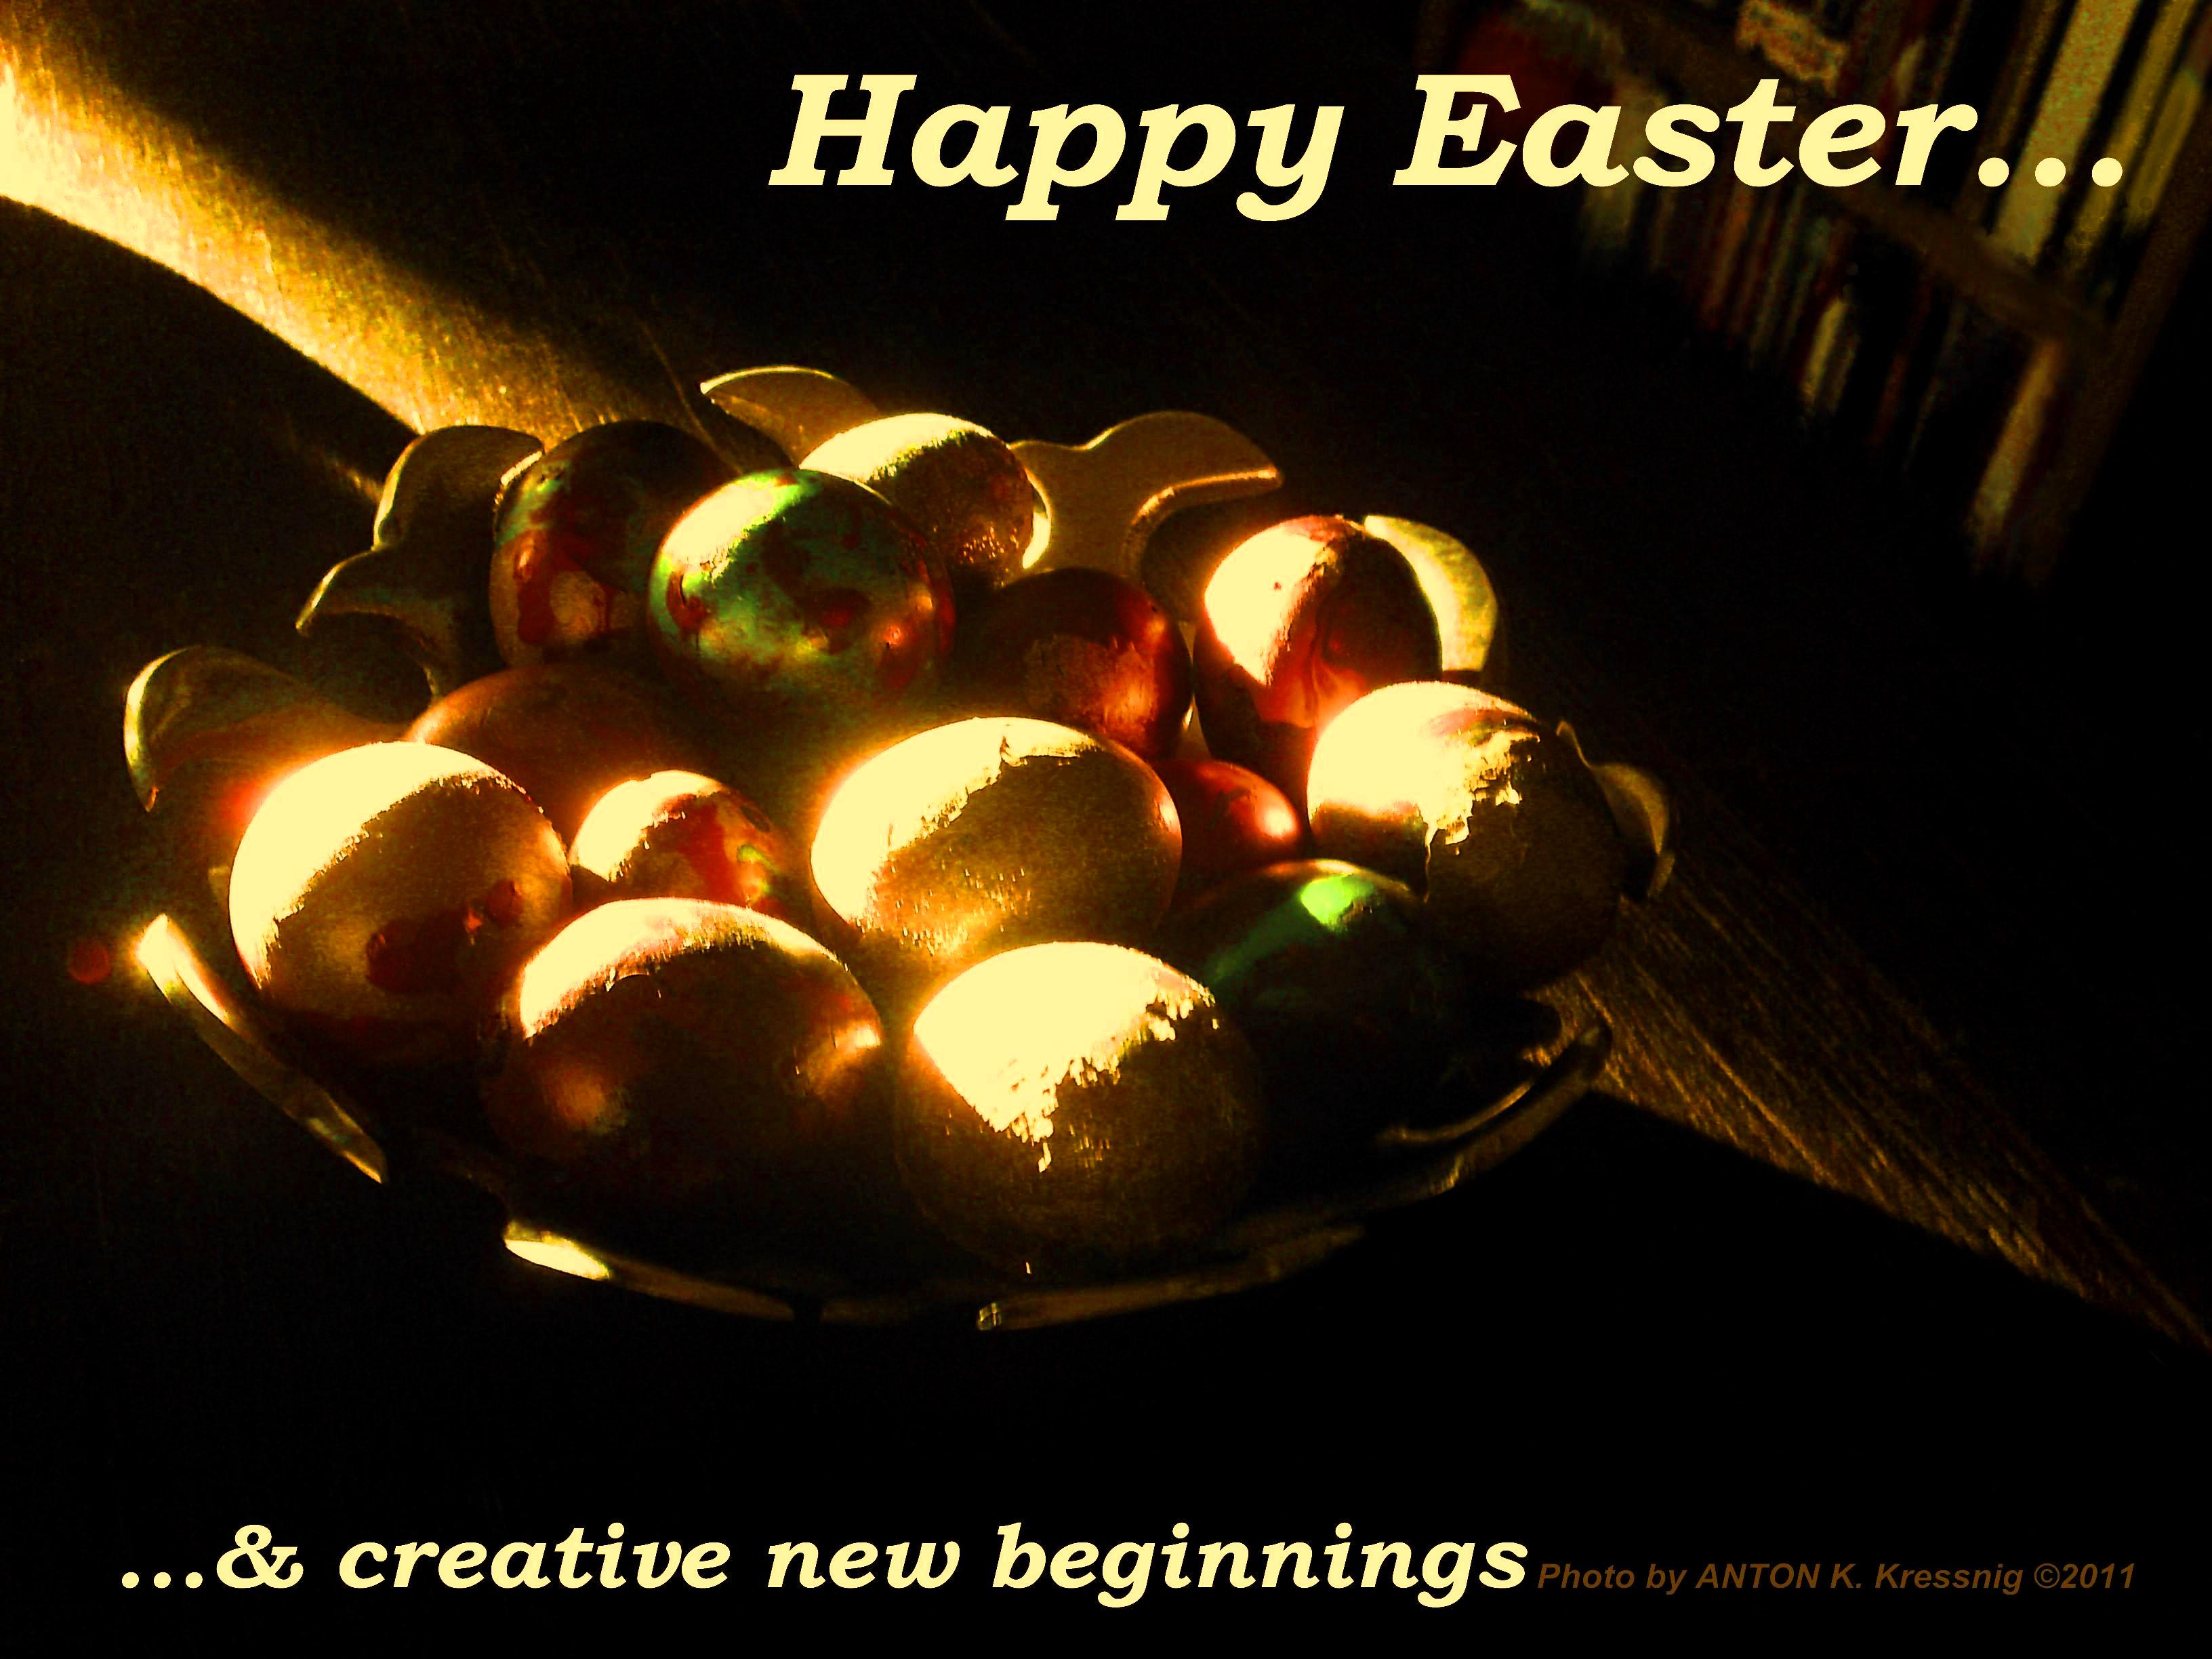 Happy-Easter-and-new-beginnings-hand-painted-easter-eggs-in-golden-sunshine-looking-like-gold-eggs-photo-by-Anton-K-Kressnig.jpg